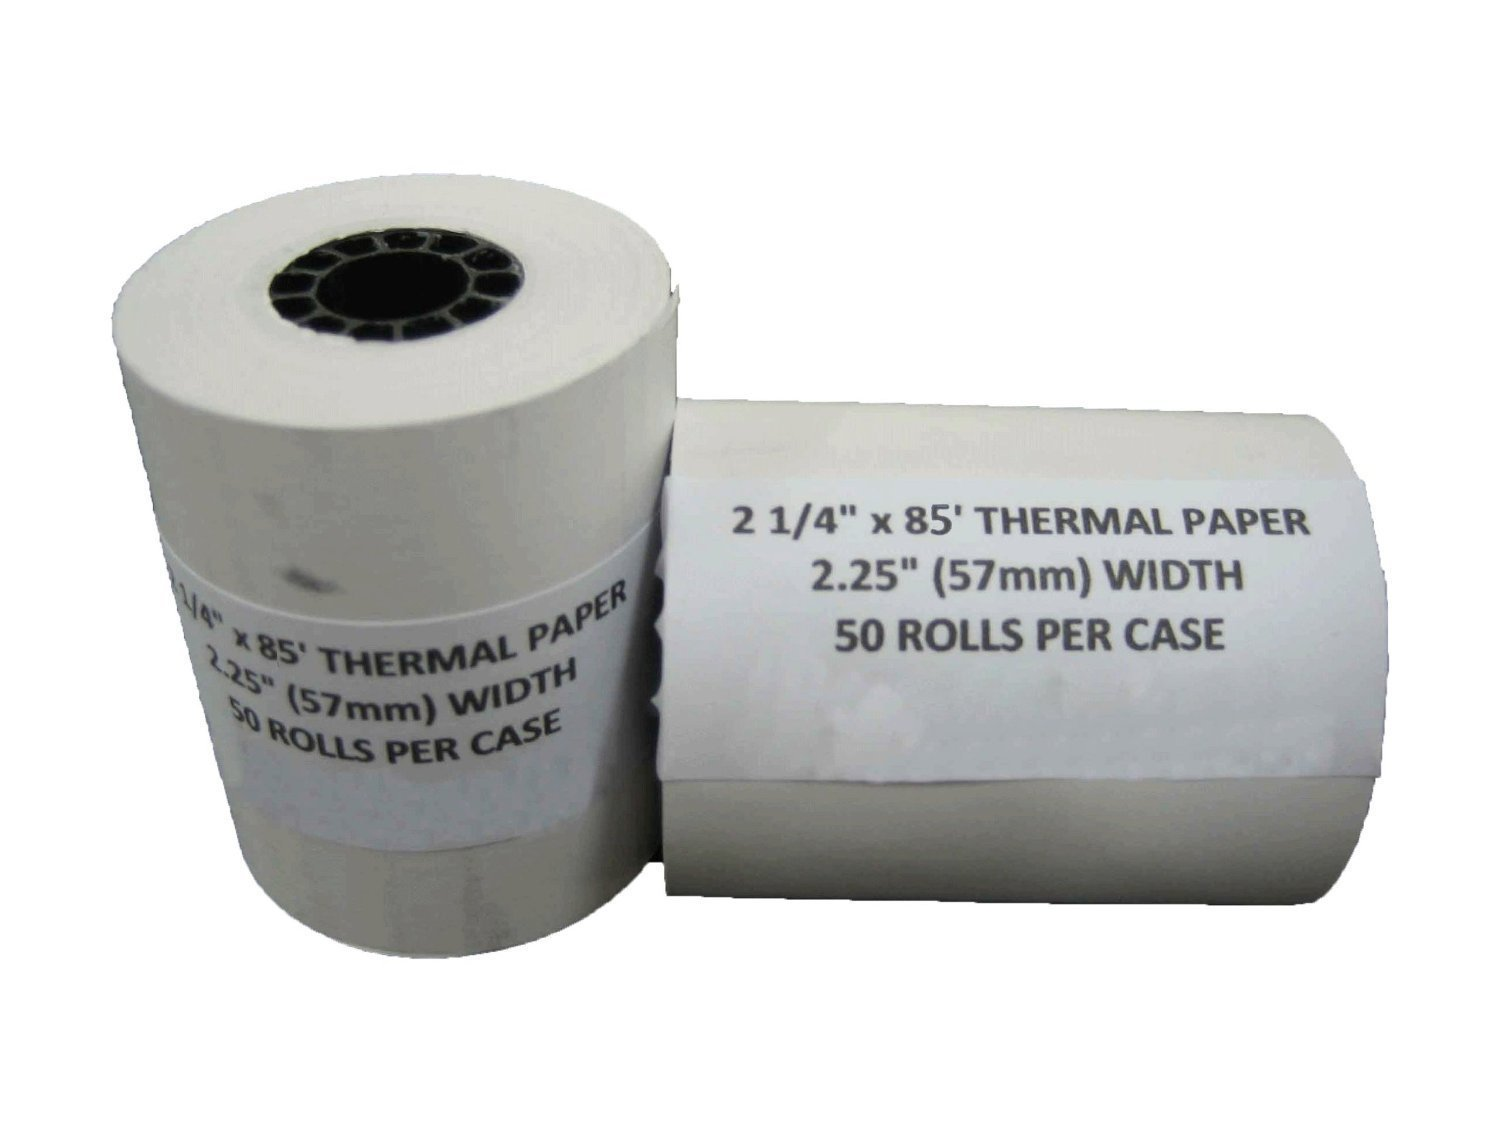 2 1/4'' X 85' Thermal Paper (50 Rolls) by Yesker